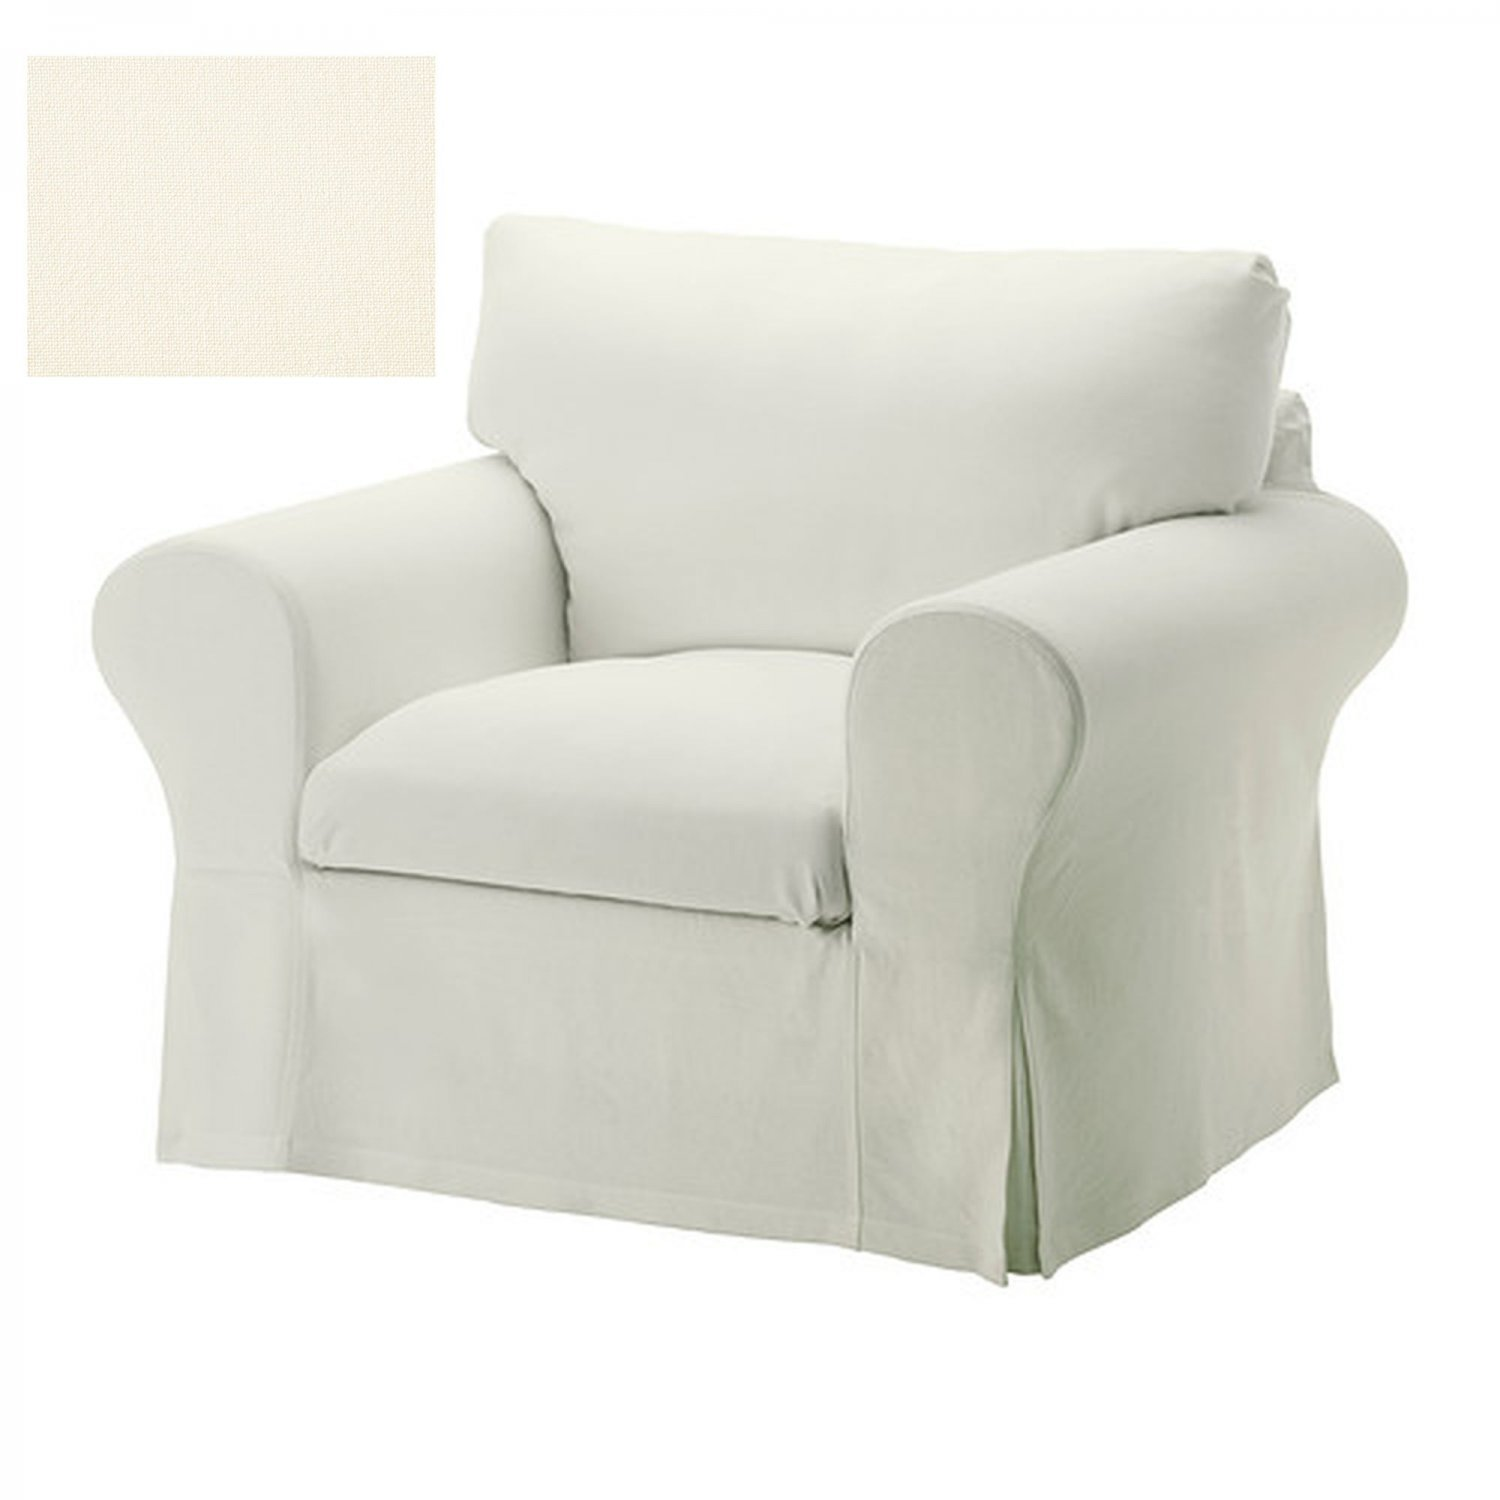 ikea tullsta chair covers uk and a half rocker recliner ektorp armchair slipcover cover stenasa white